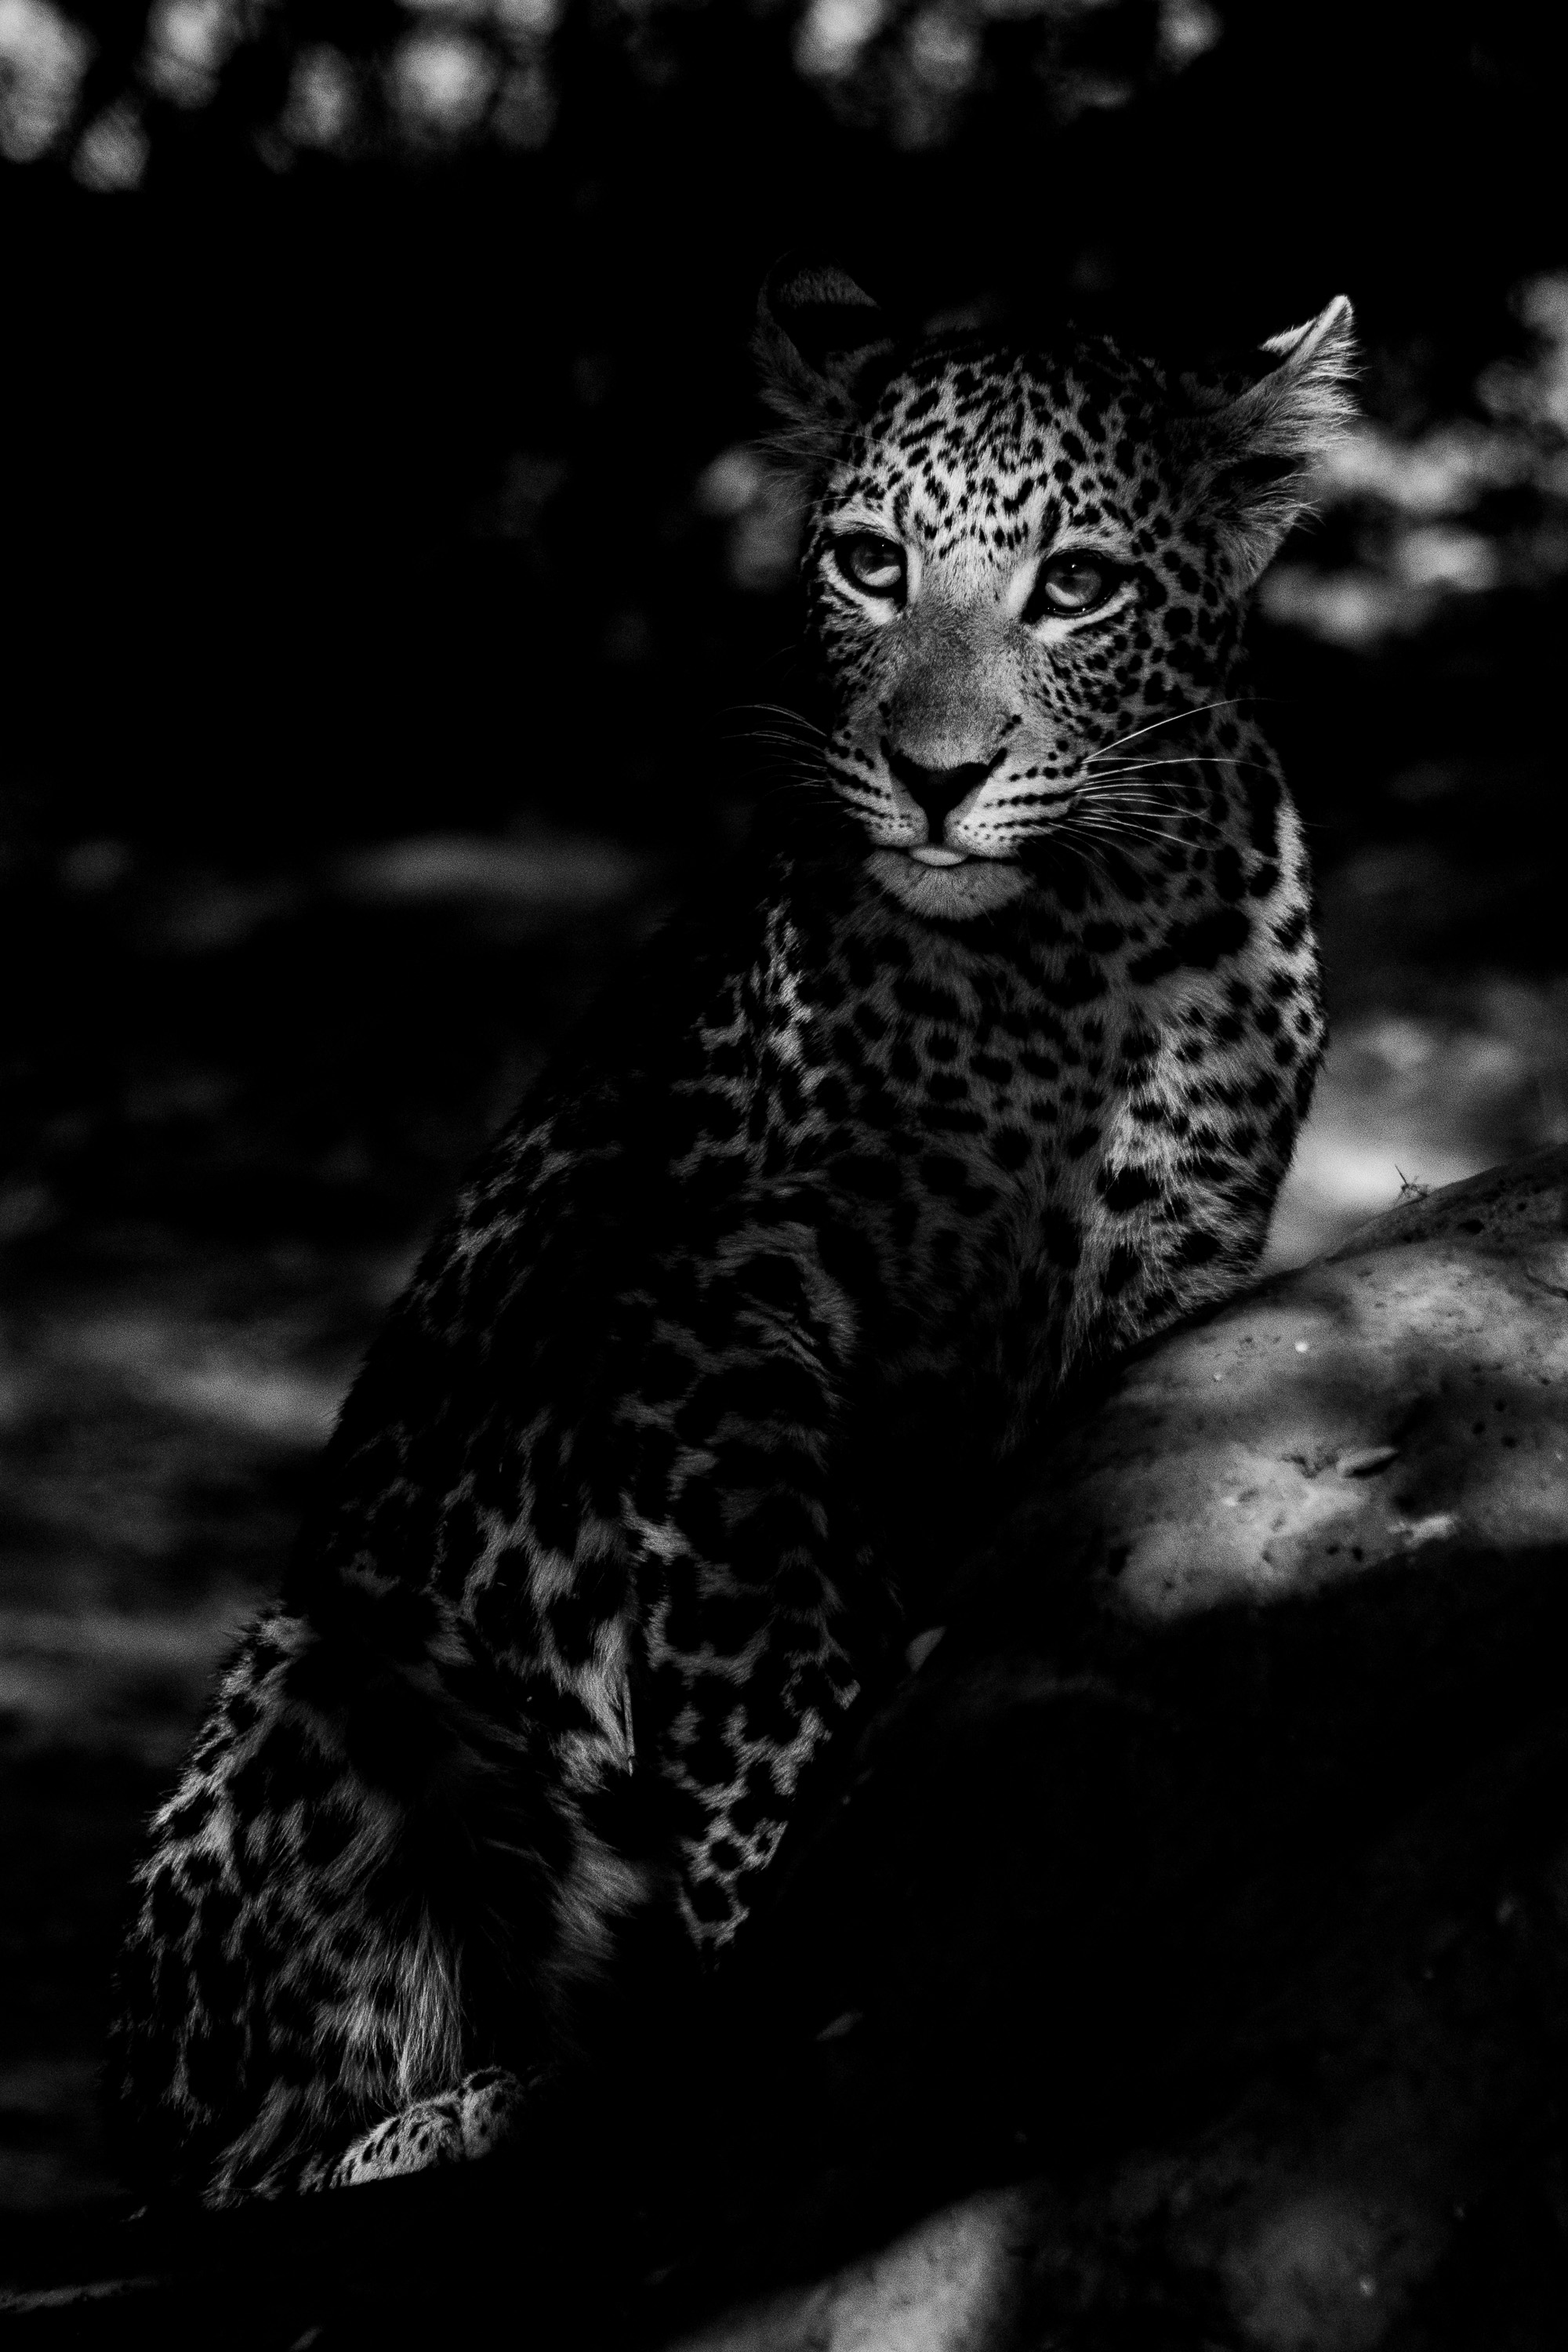 Black and white image of a young leopard